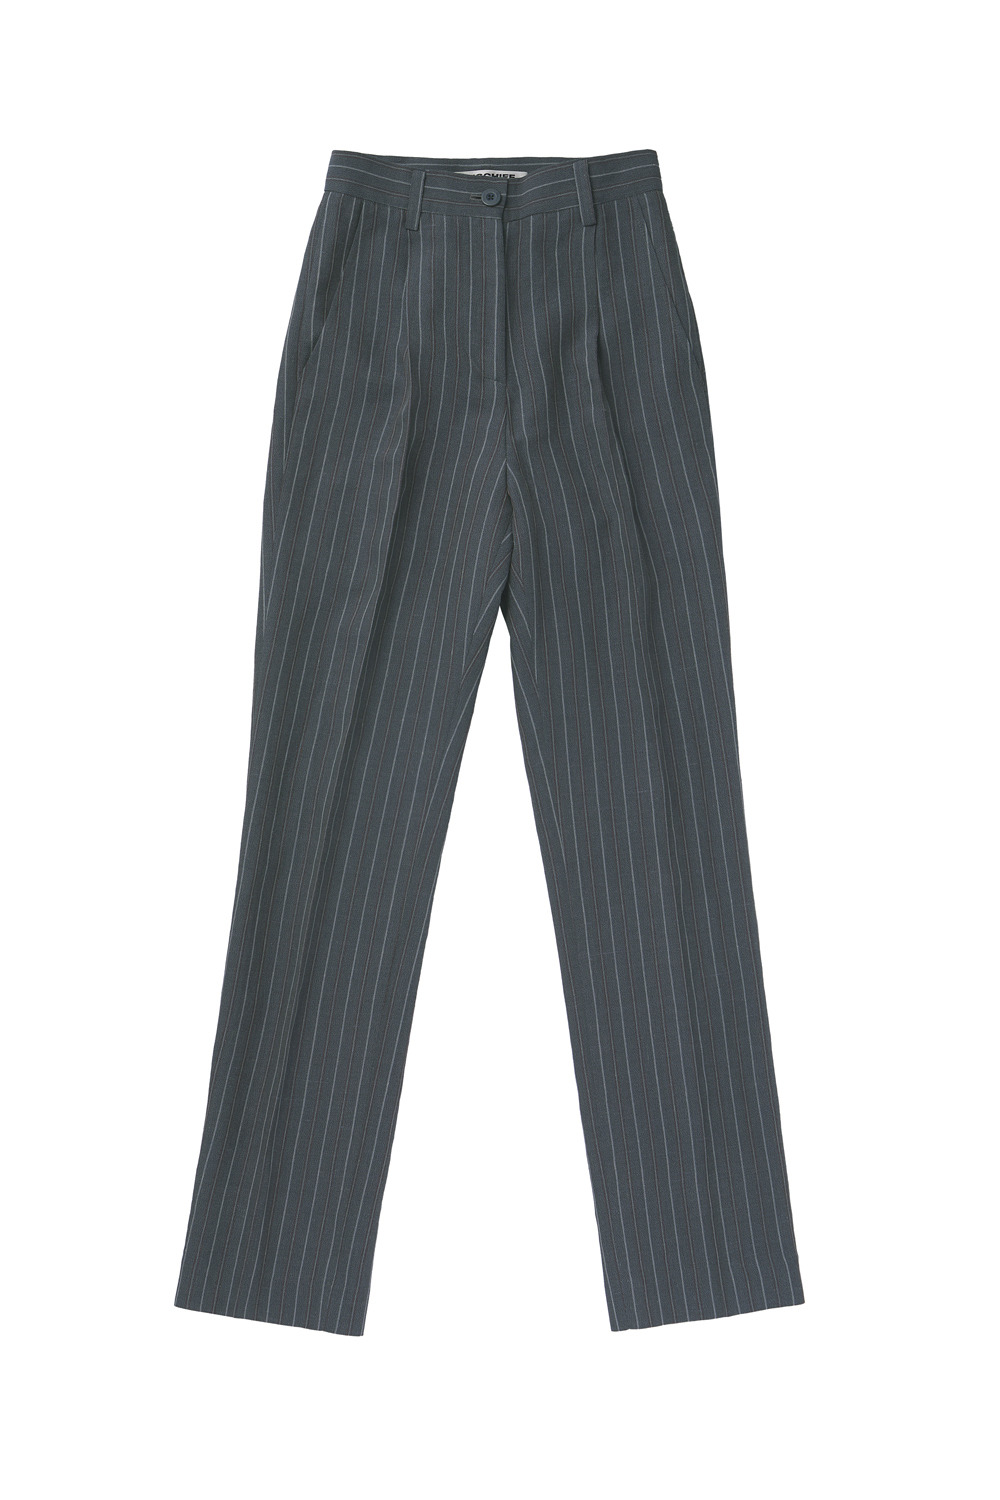 STRIPED LONG SUIT PANTS_gray